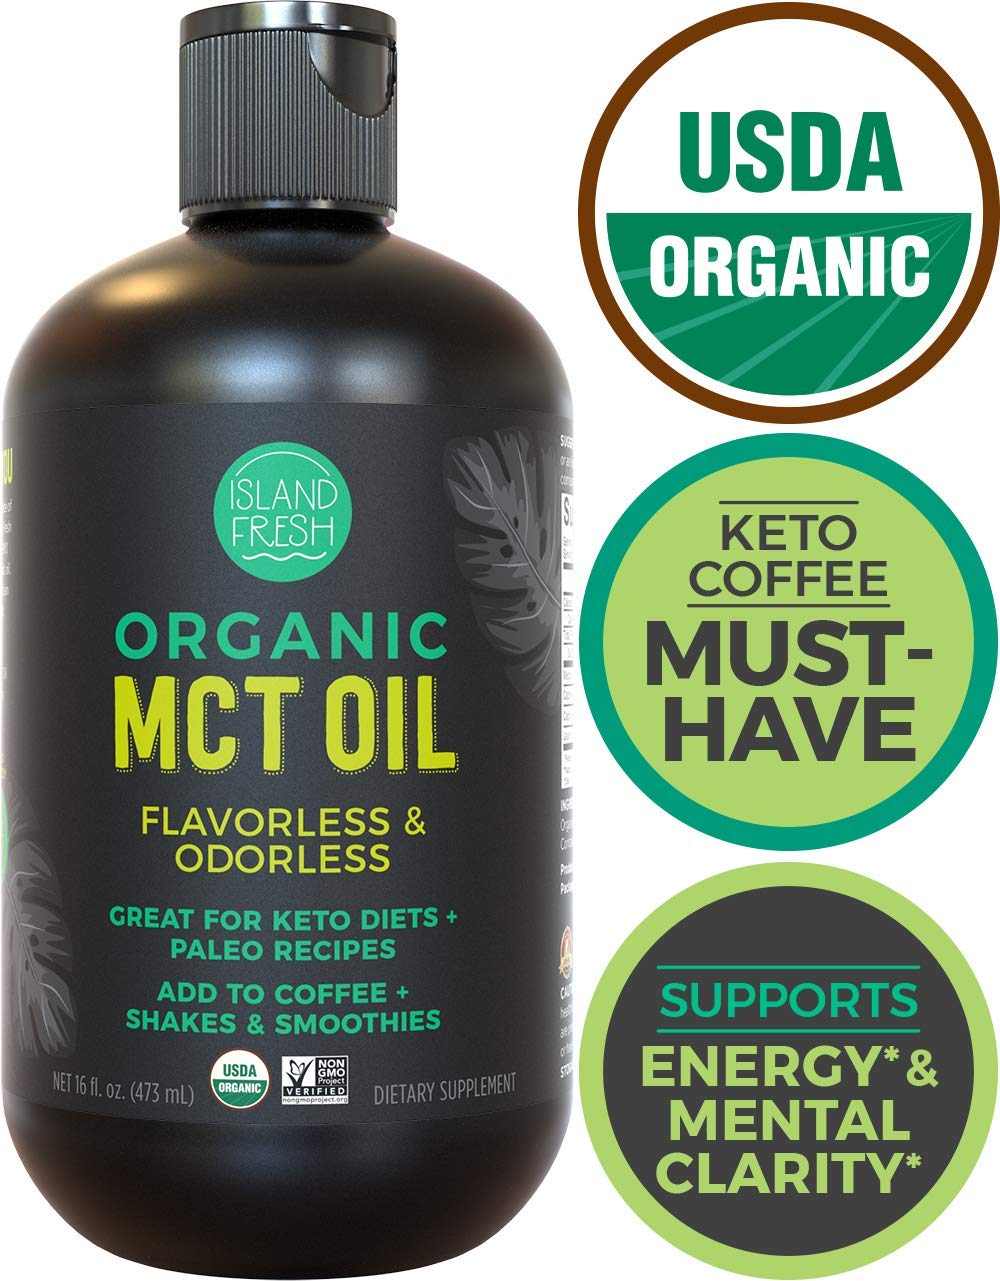 Organic MCT Oil For Keto Diet | Perfect for Morning Coffee, Helps Support Increased Energy | Made From 100% Organic Coconuts (16 fl. oz)